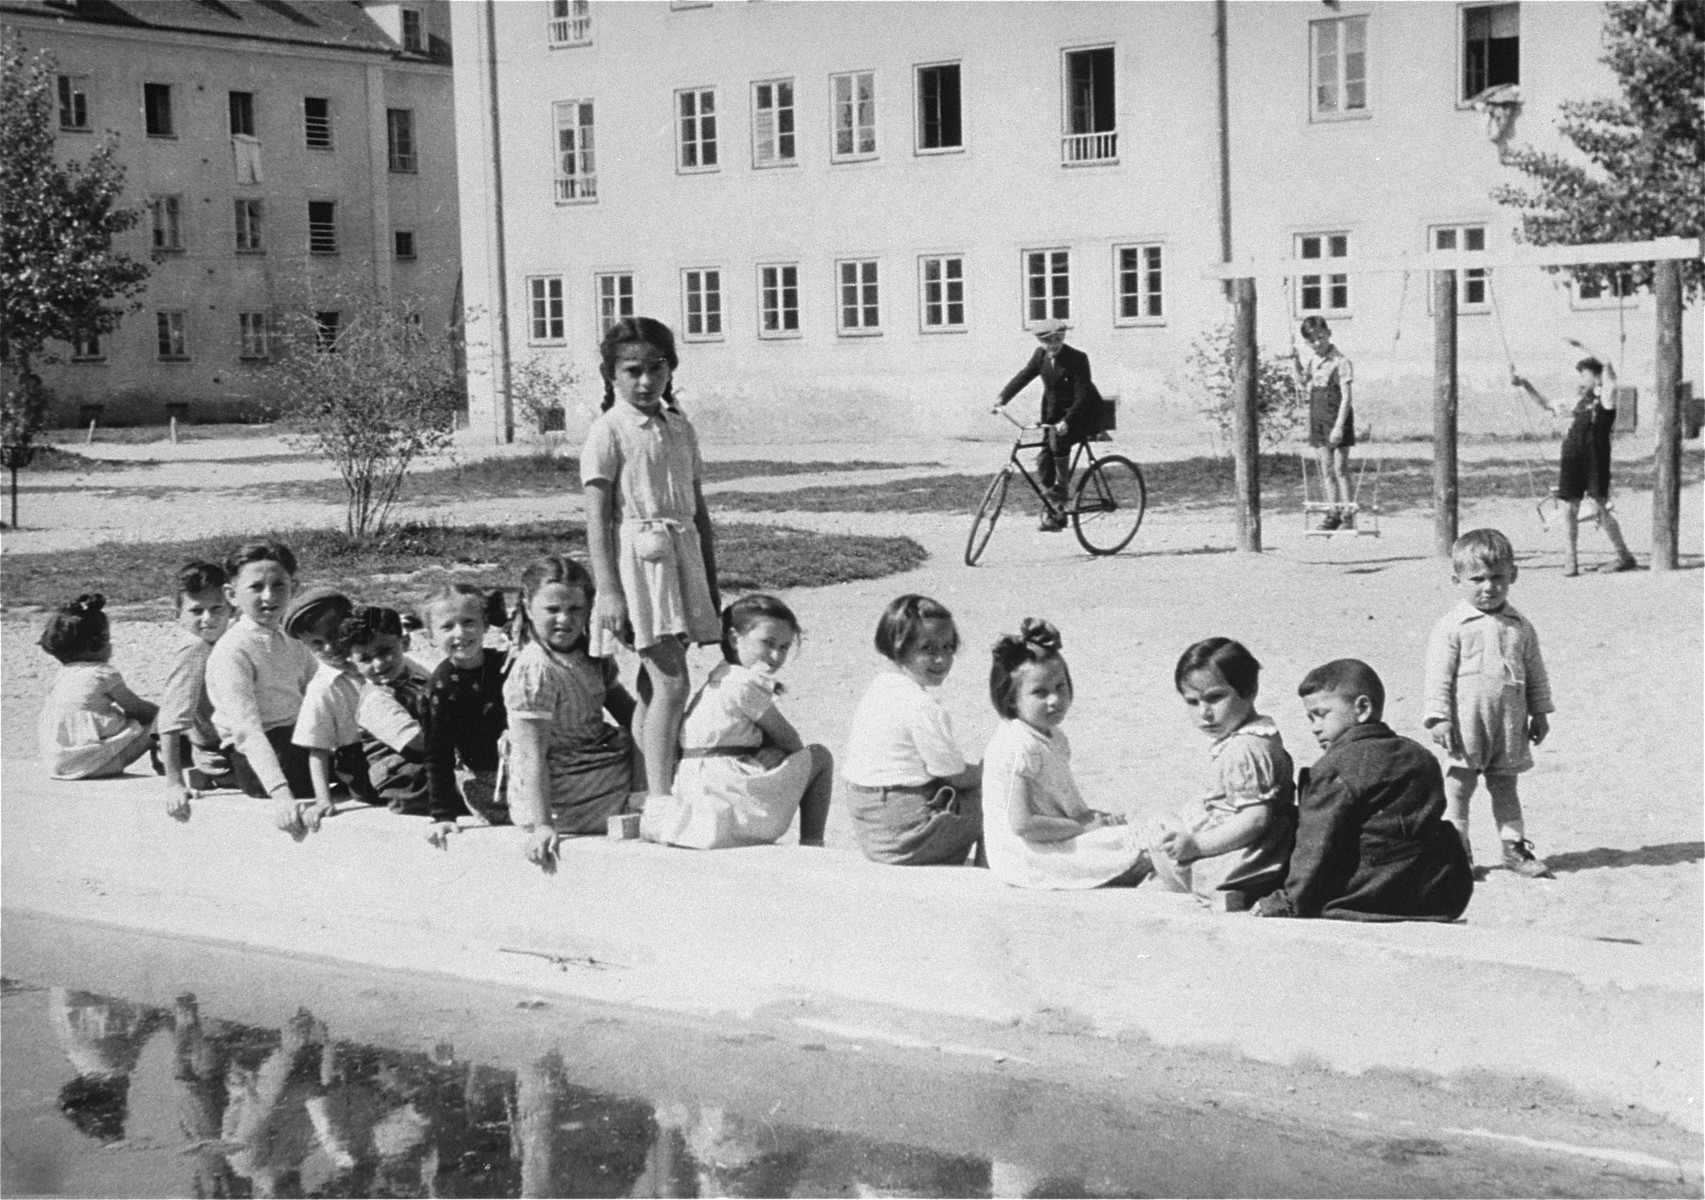 DP children on the playground in the Bindermichl DP camp.    The seated child directly to the left of the standing girl is Fayge Katz  (later Frances Schwartz).  She was born in Trochenbrod to Sara (Szames) Katz.  Sara later married Chaim Fisgeyer, while in Bindermichl, and they had a daughter named Mona.